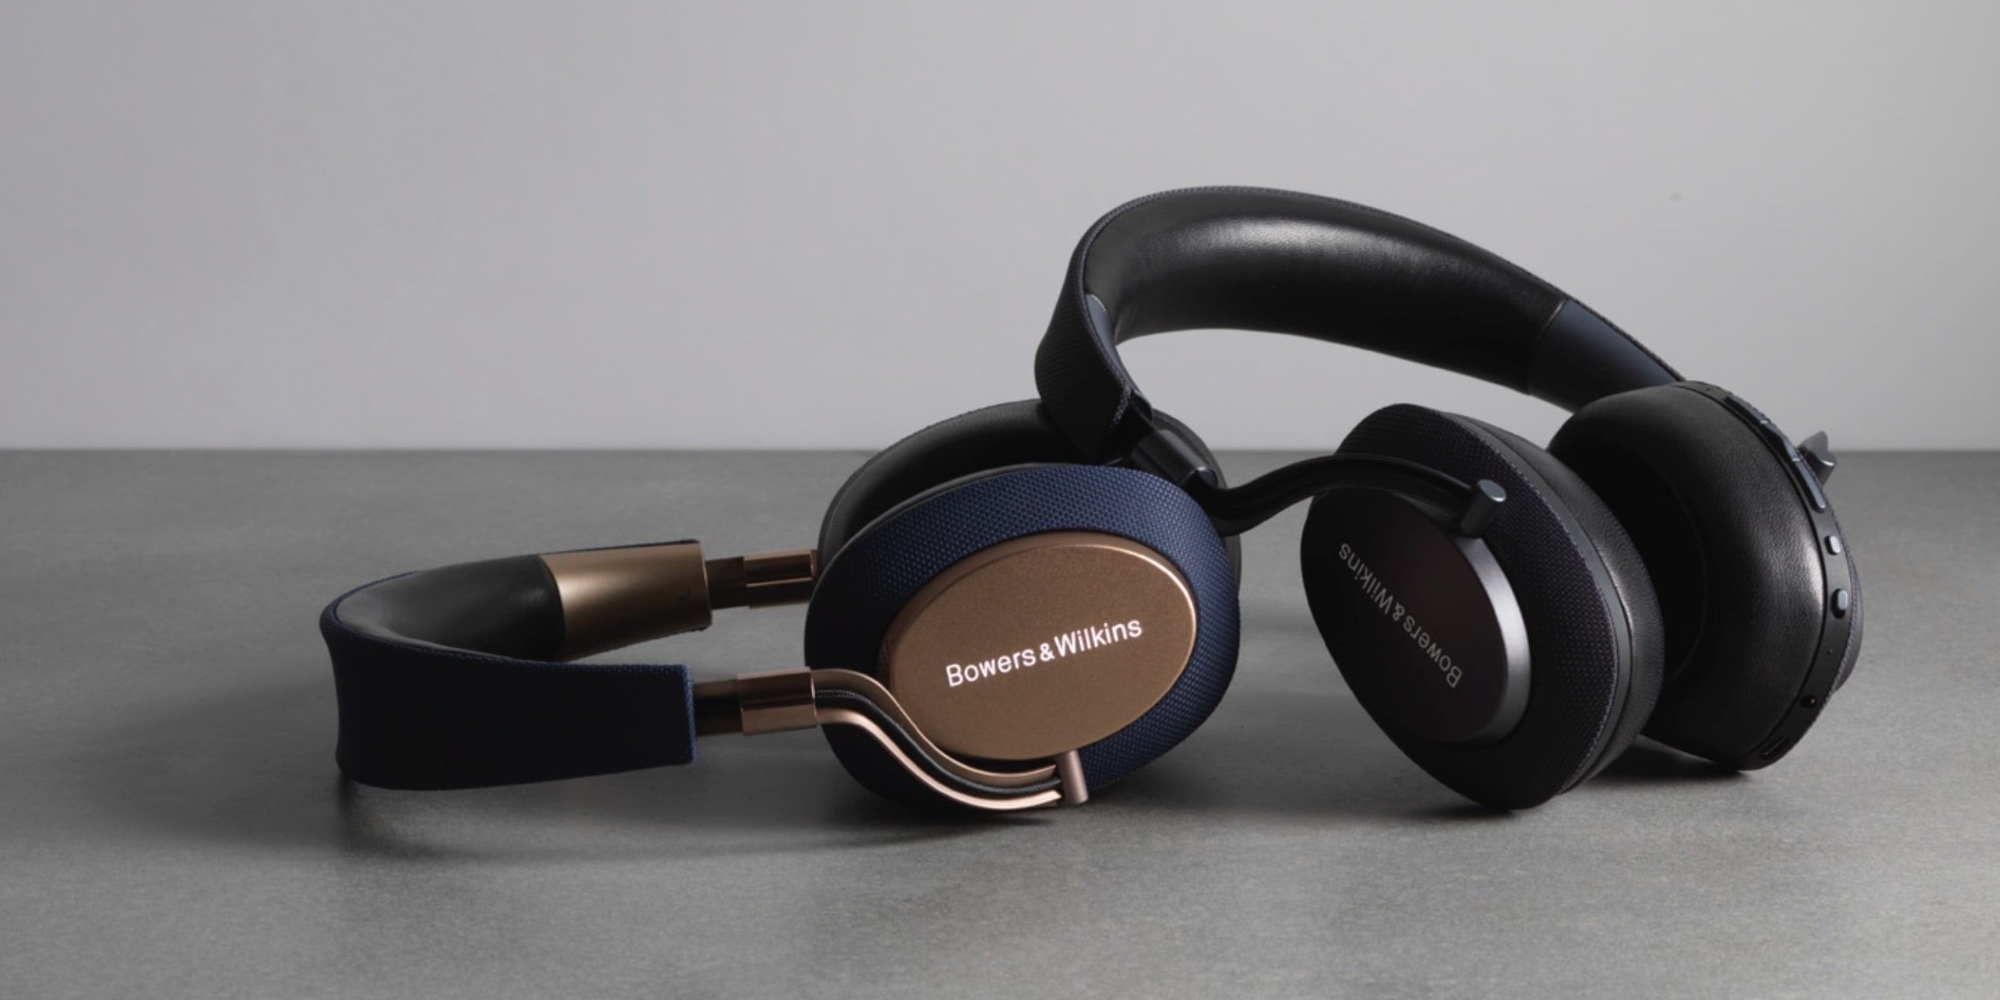 Bowers & Wilkins PX ANC Wireless Headphones fall to new Amazon low at $300 (25% off), more